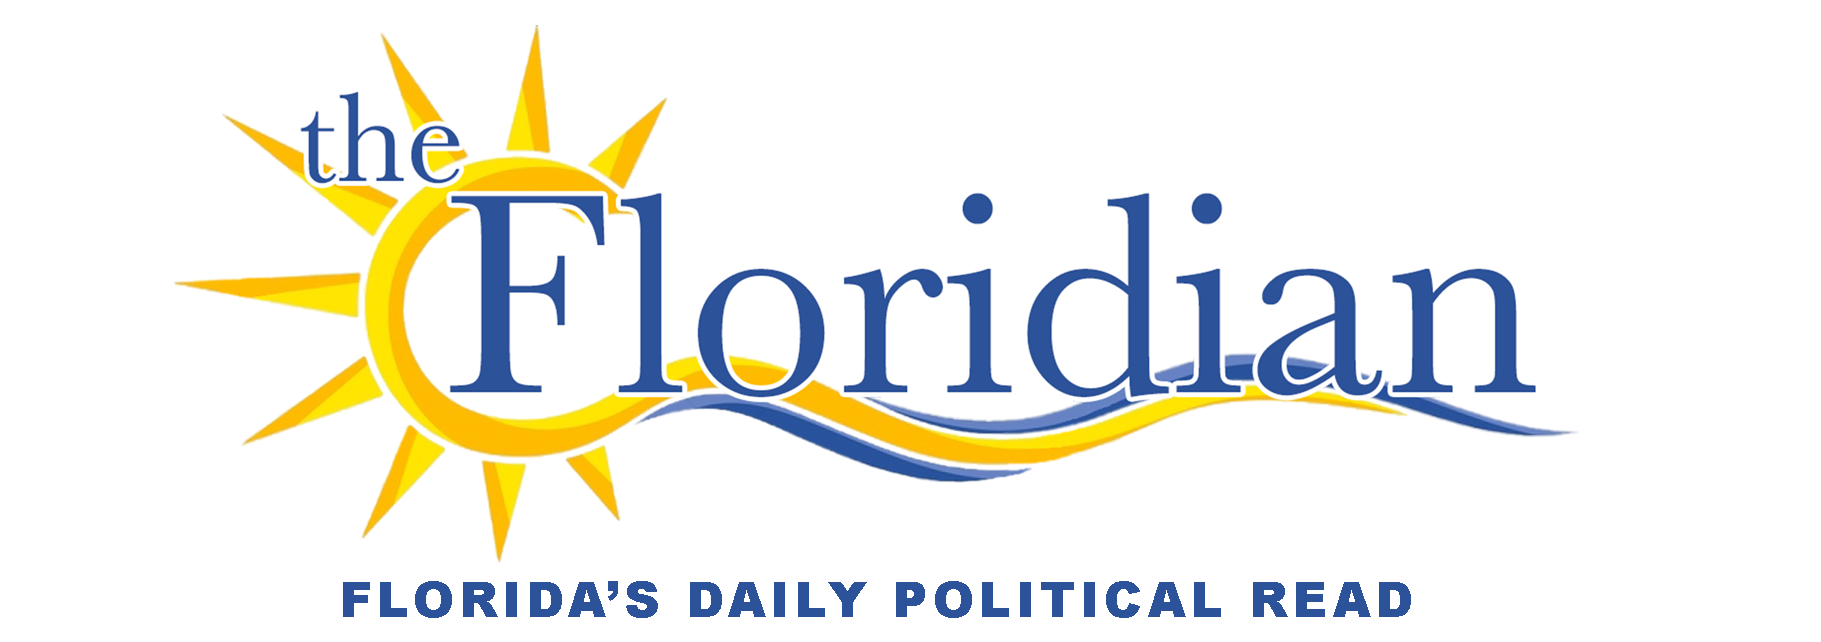 THE FLORIDIAN – Florida's Daily Political Read – 5.29.2019